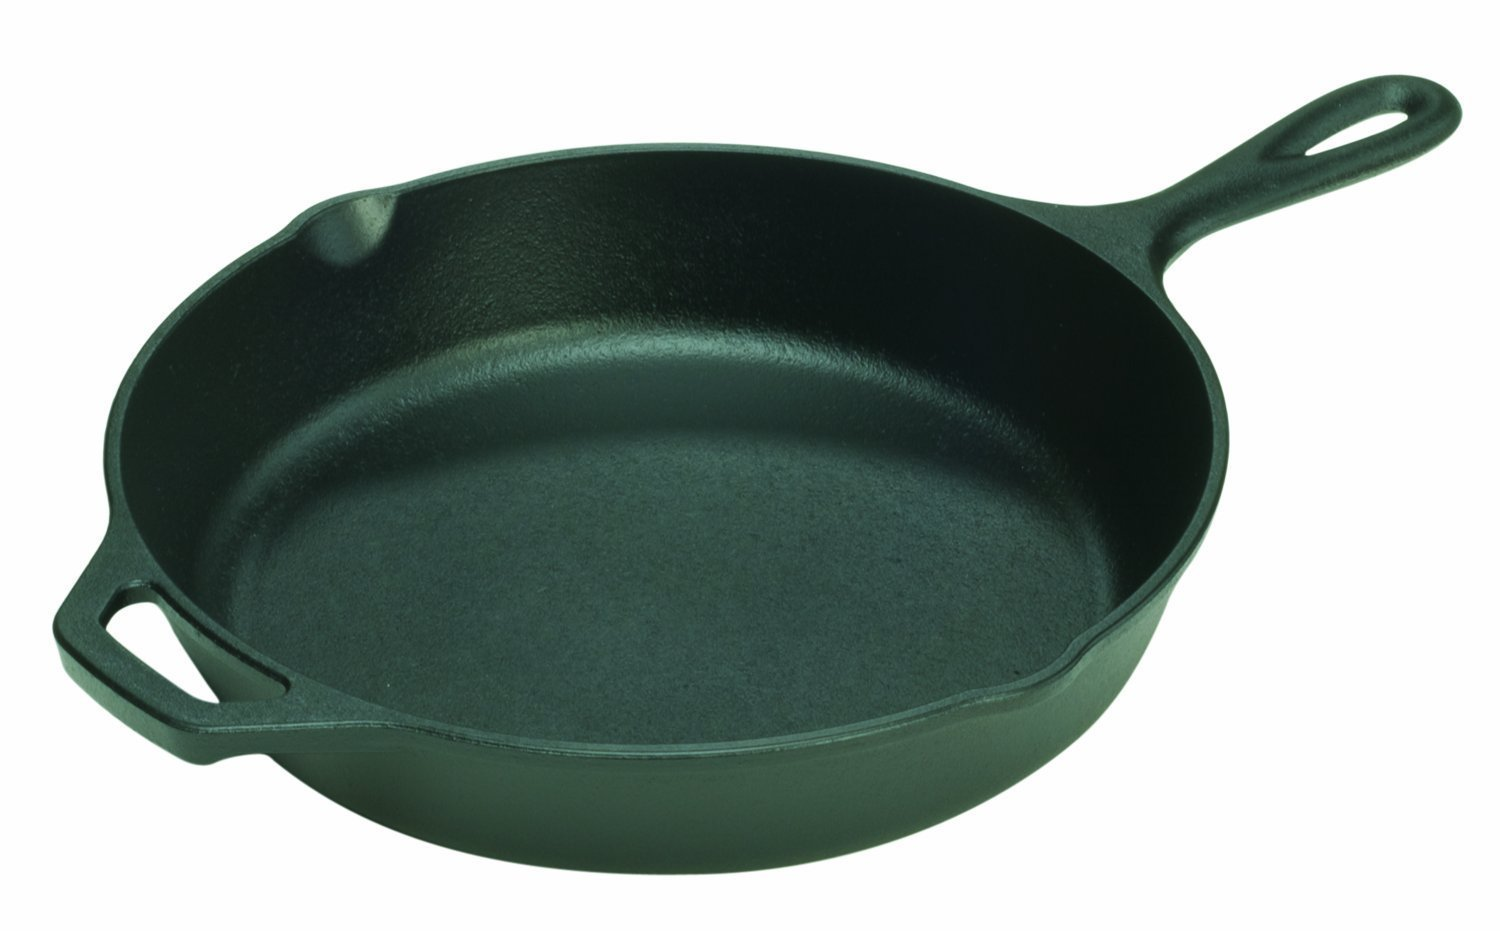 My Favorite Things :: Cast Iron Skillet - Cooking | Add a Pinch